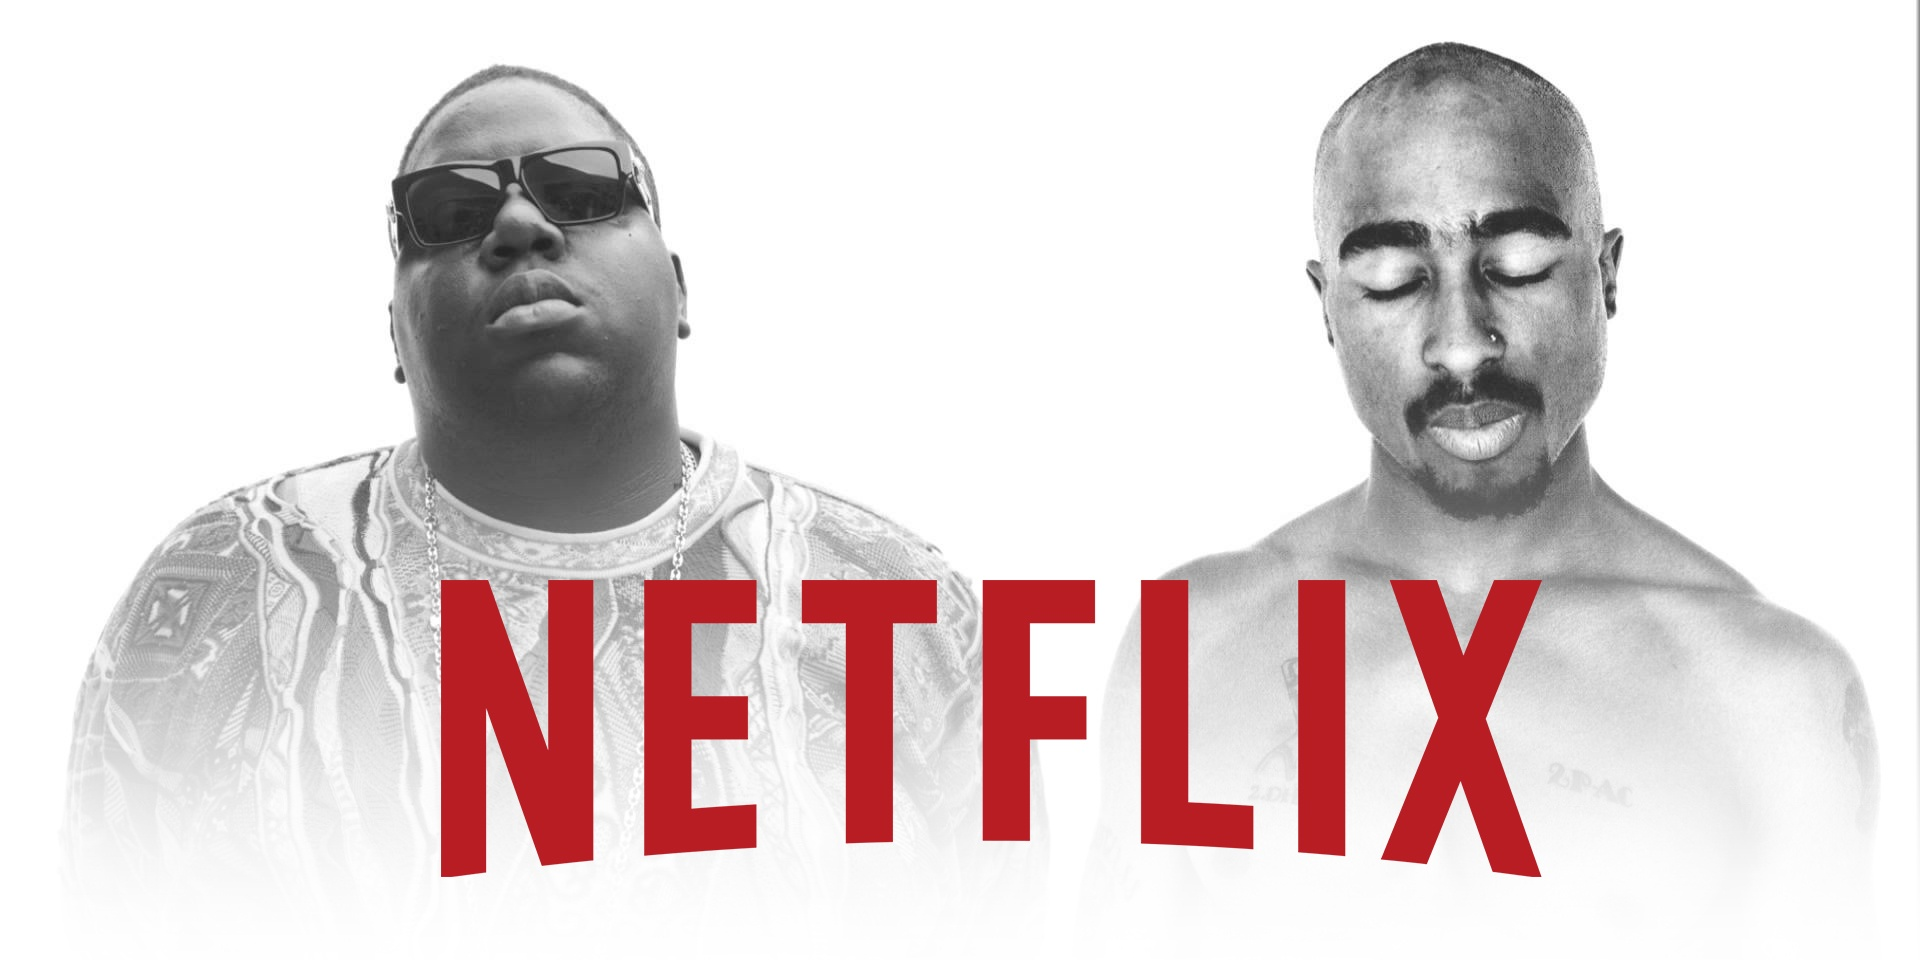 5 music-related films you can catch on Netflix right now